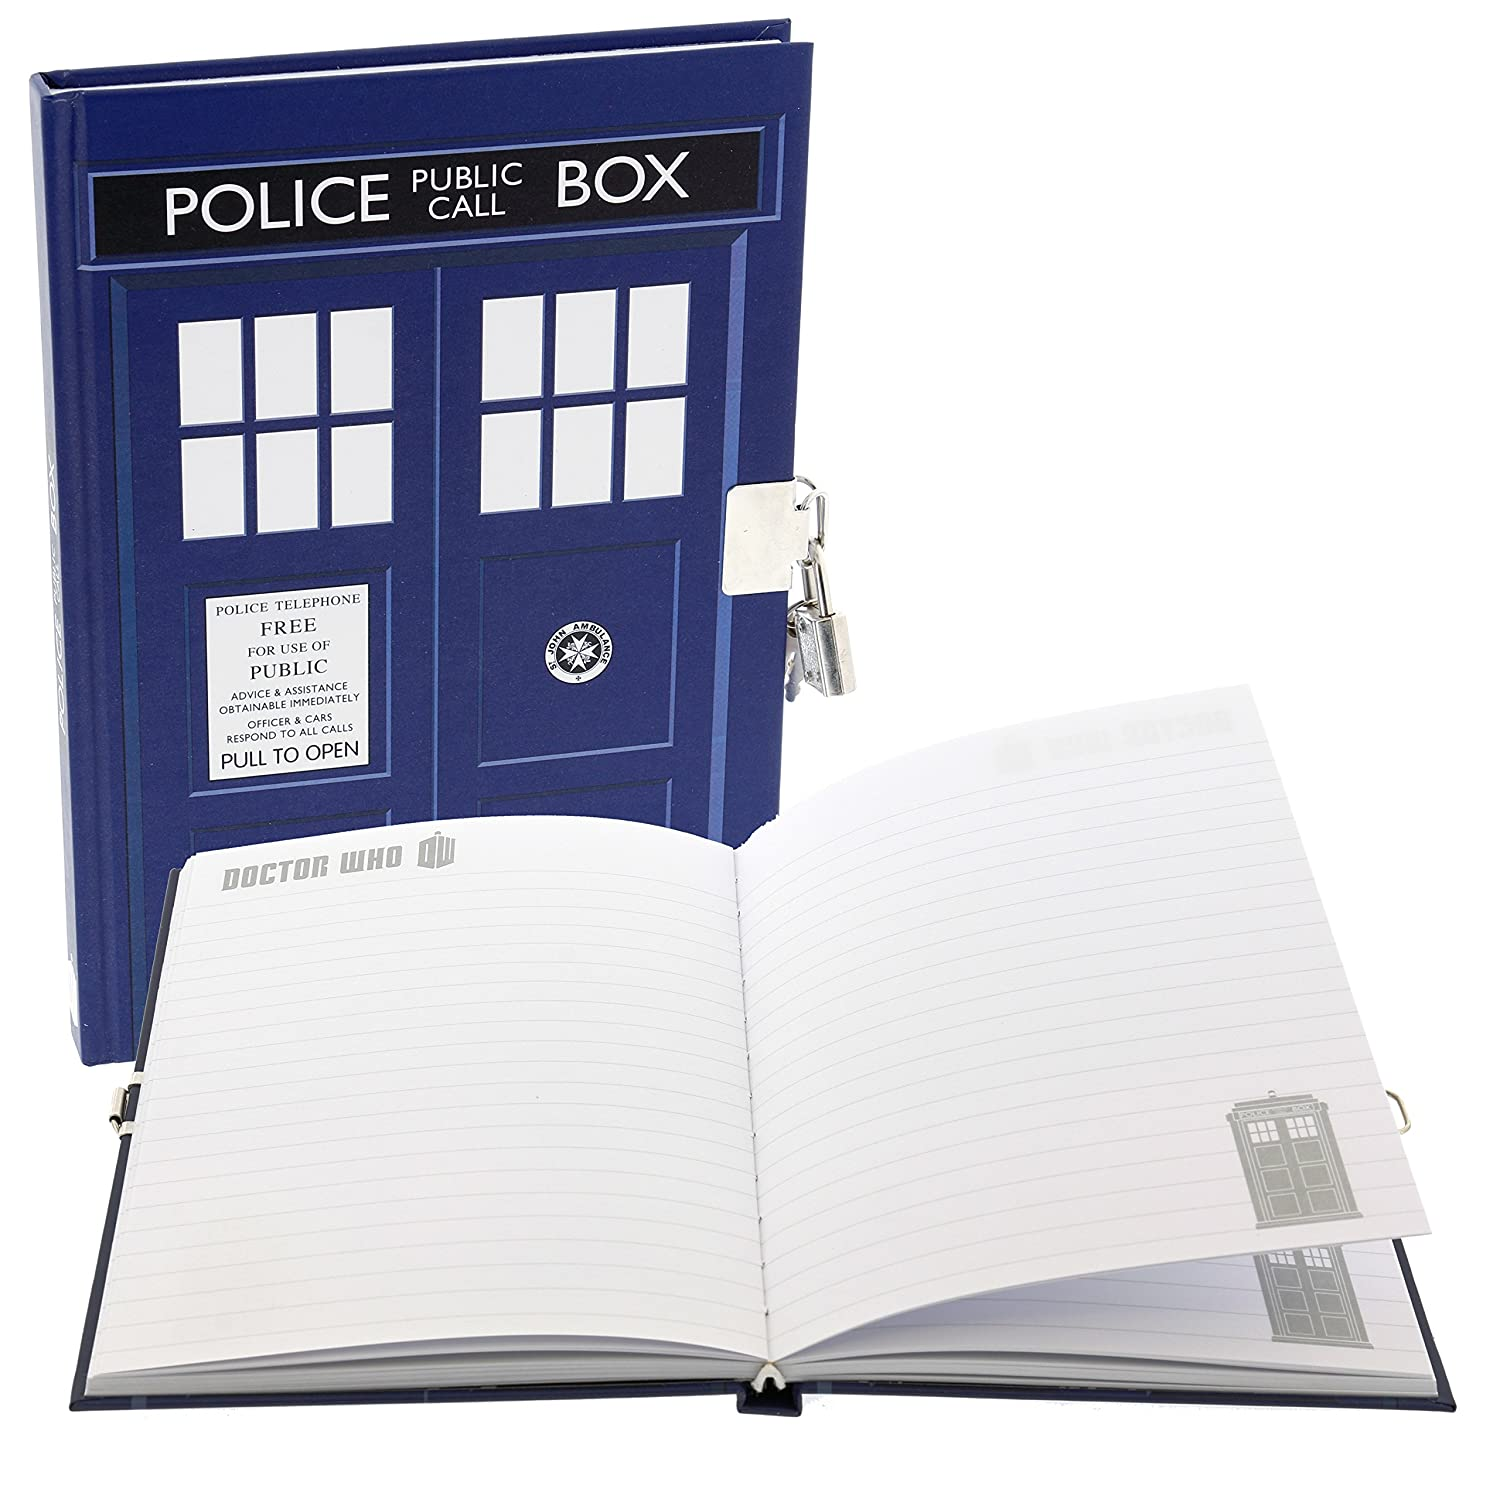 Doctor Who Diary - TARDIS Lock and Key Journal - 6 x 8.5 Notebook